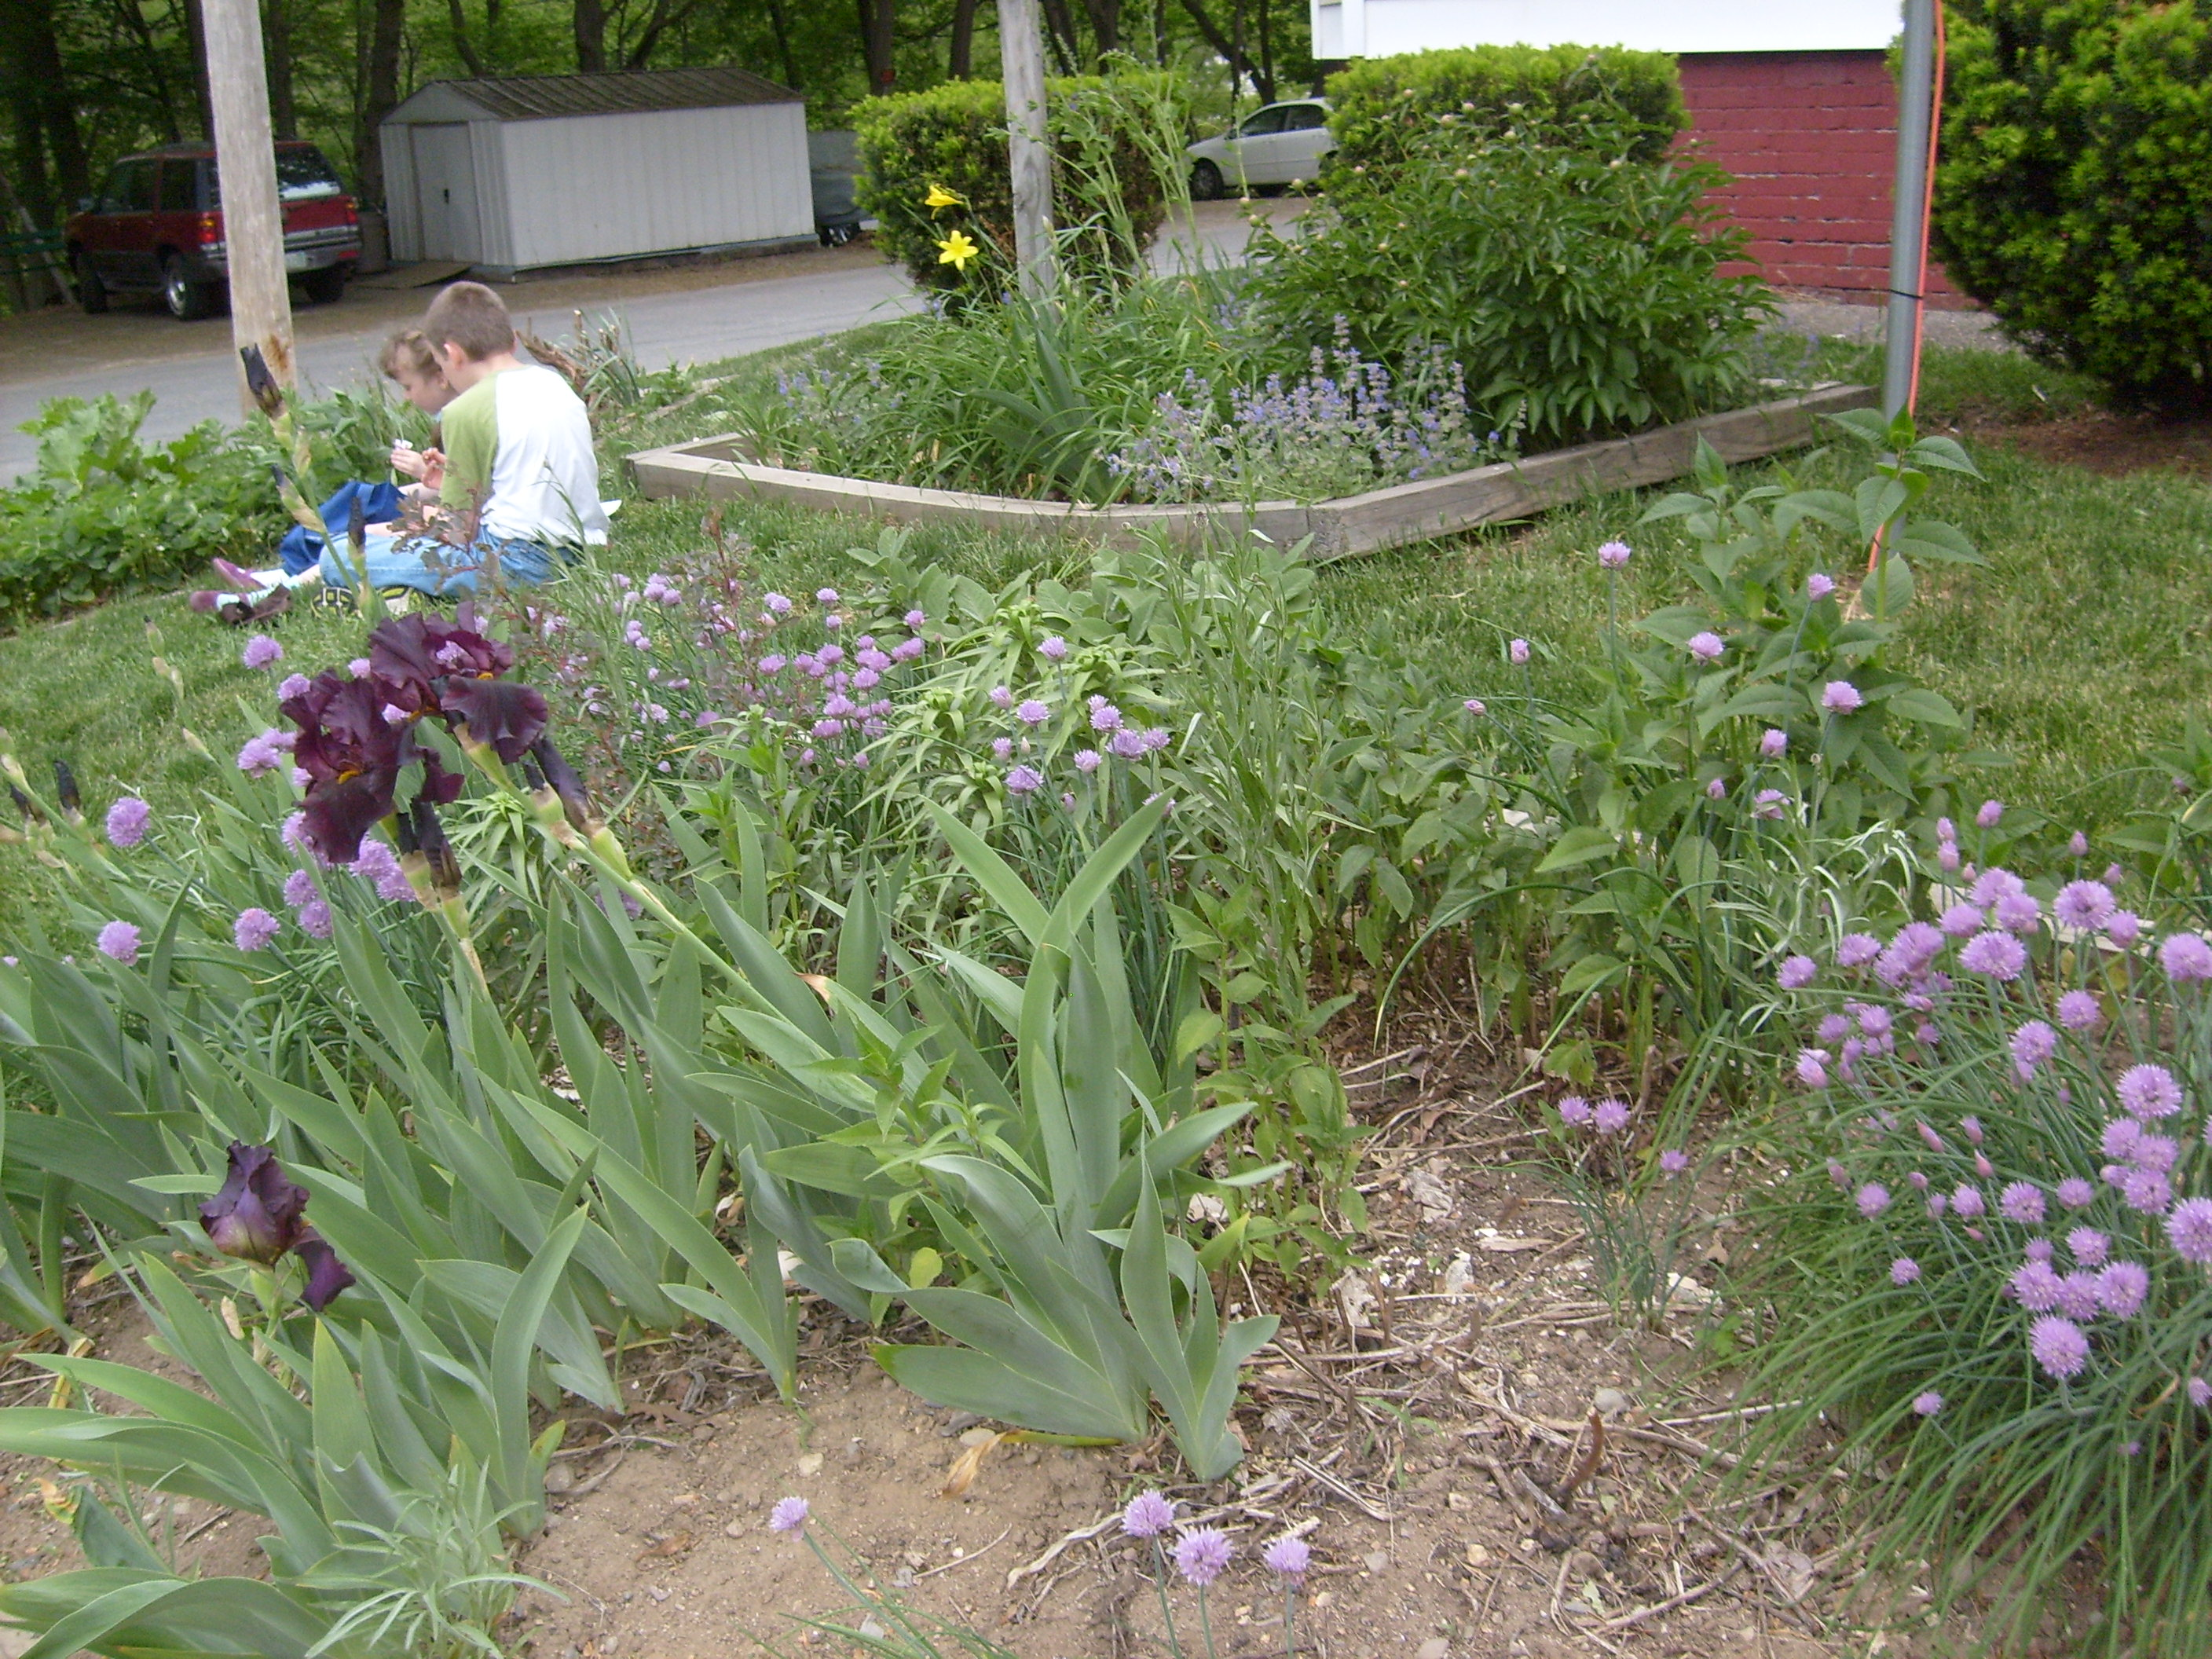 The purple Iris and chive blossoms, with M and K trading candy in the background on Memorial Day